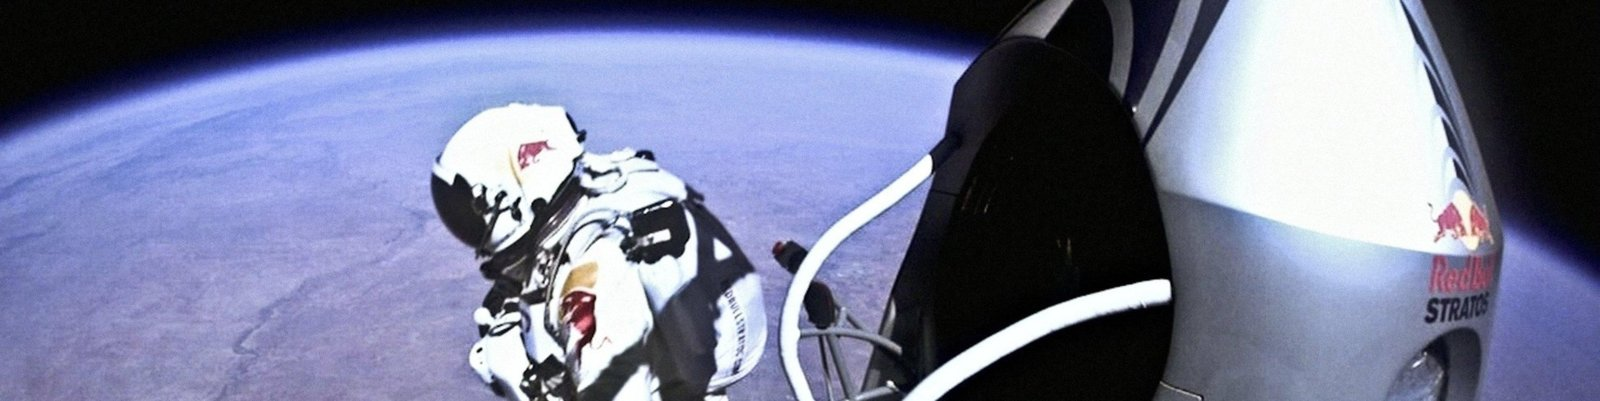 red-bull-stratos-mission-attempt.